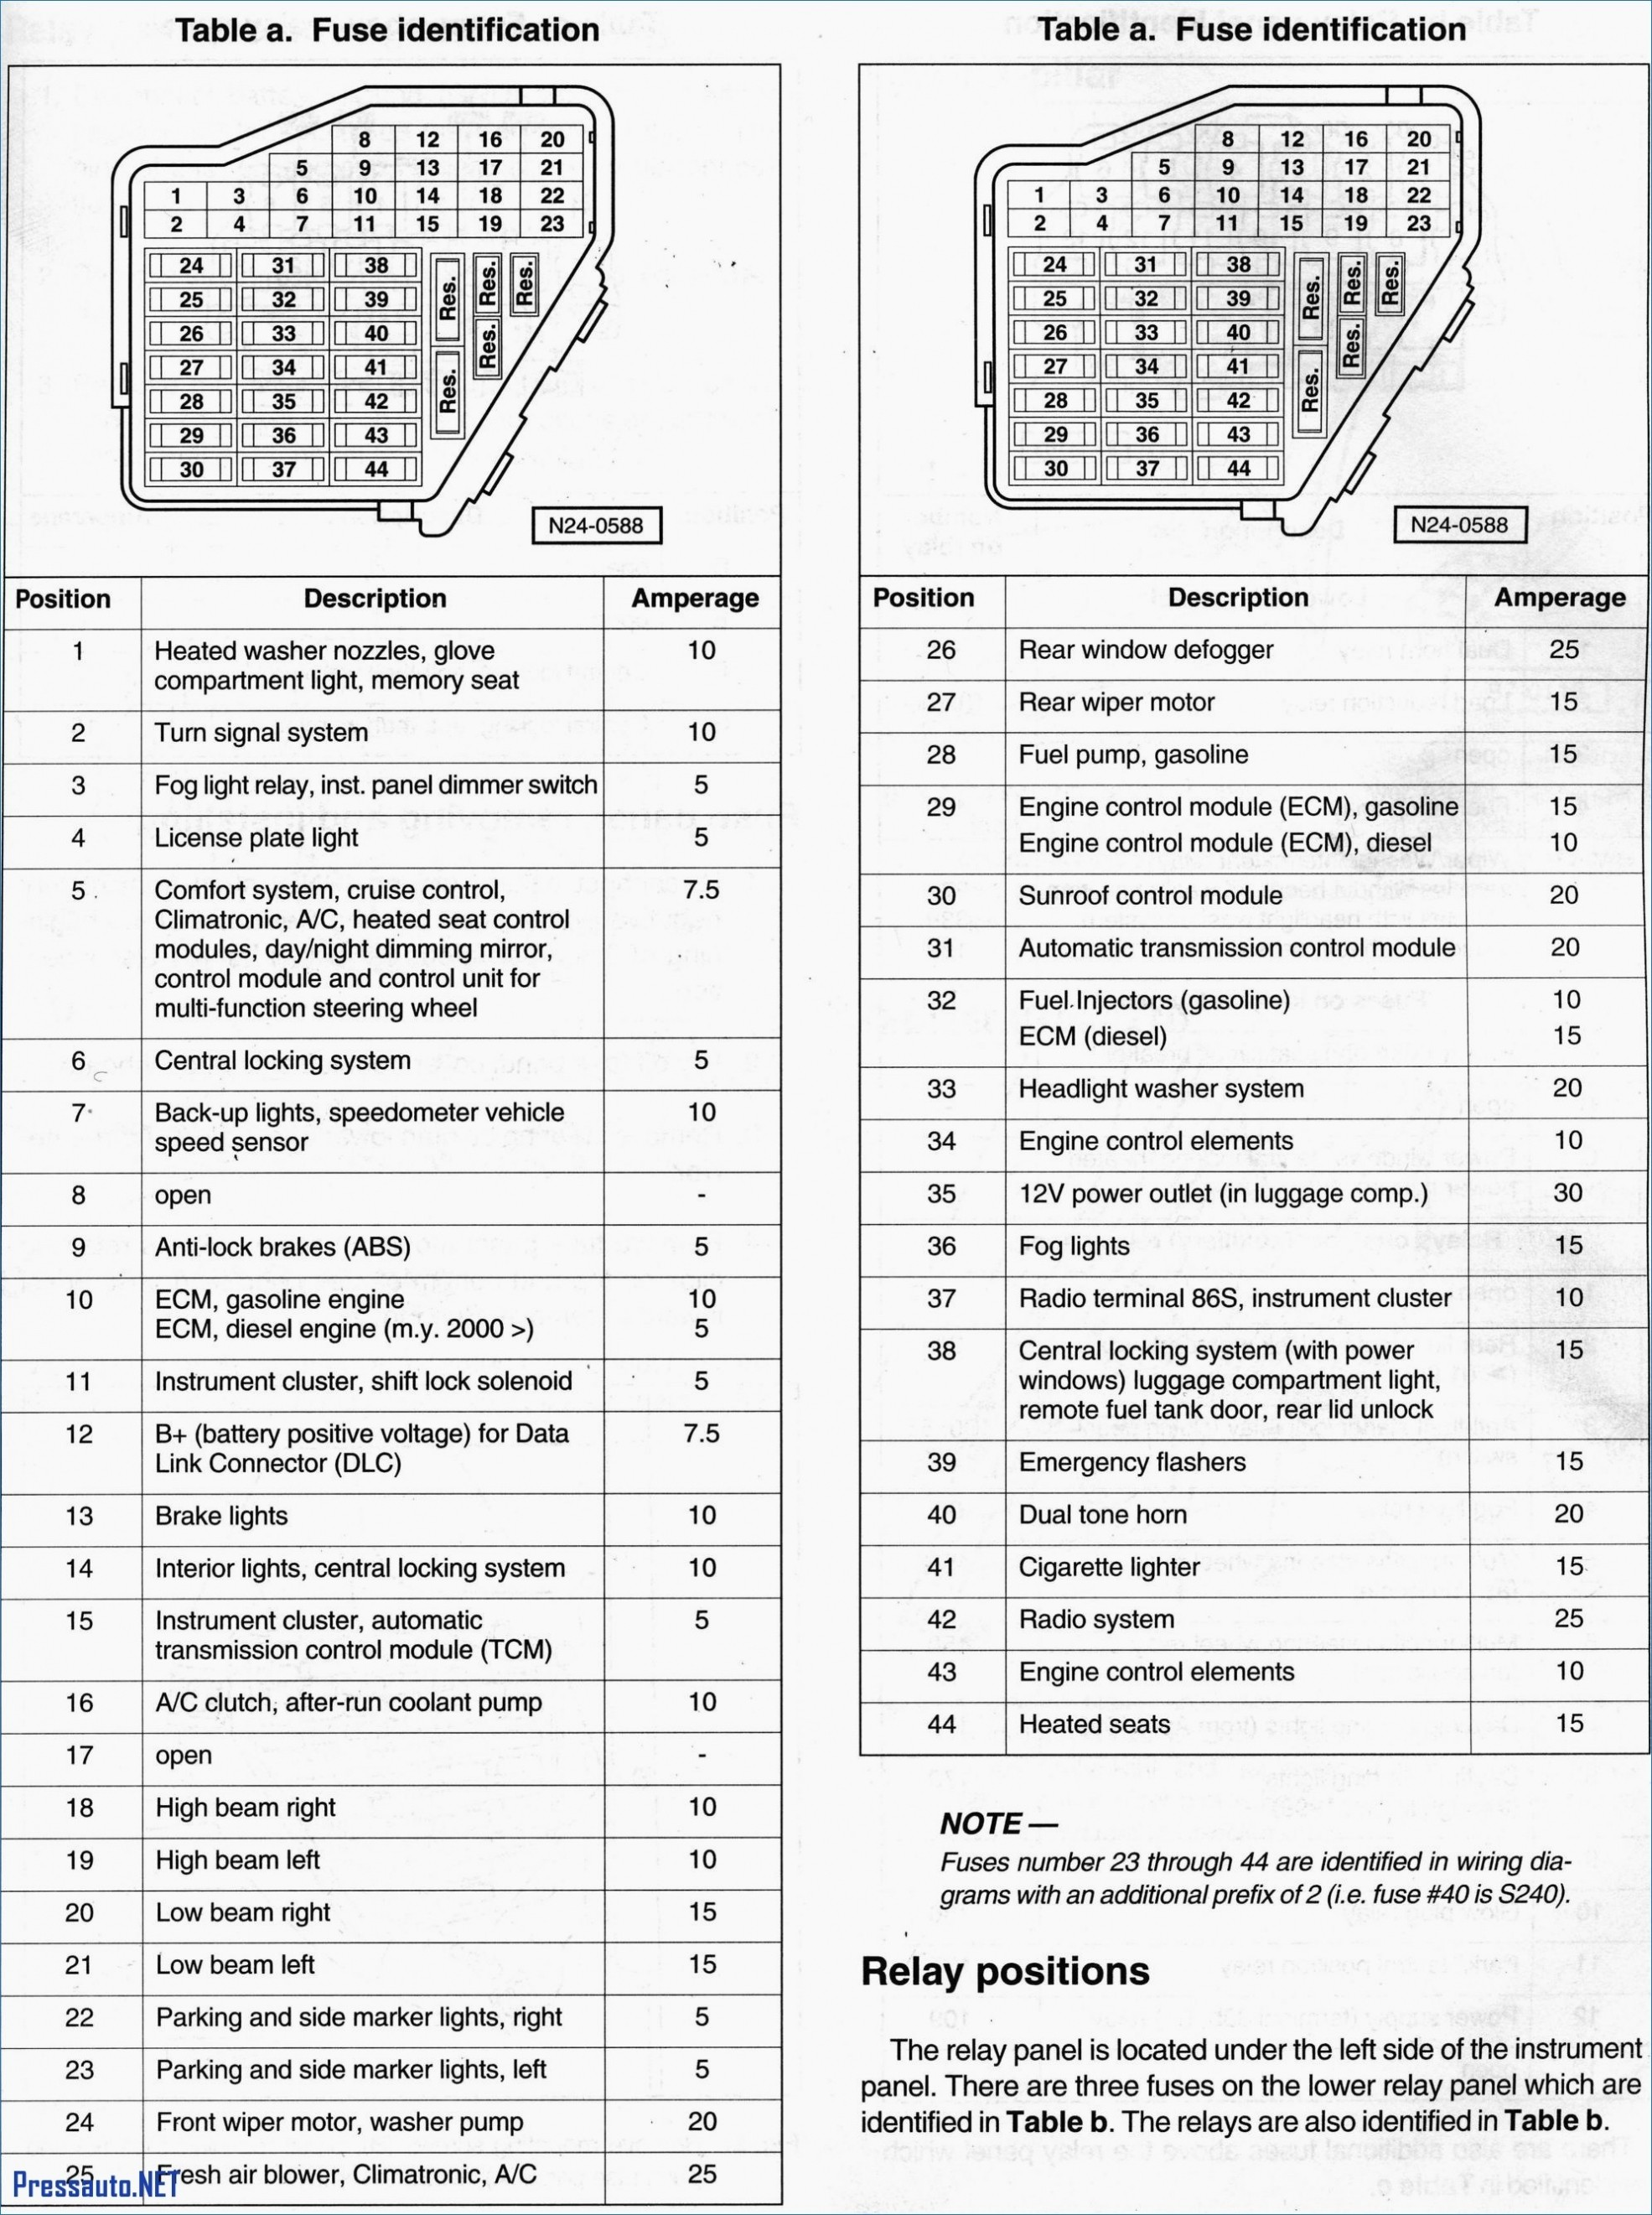 99 audi a4 fuse box diagram - wiring diagram please-data-a -  please-data-a.disnar.it  disnar.it